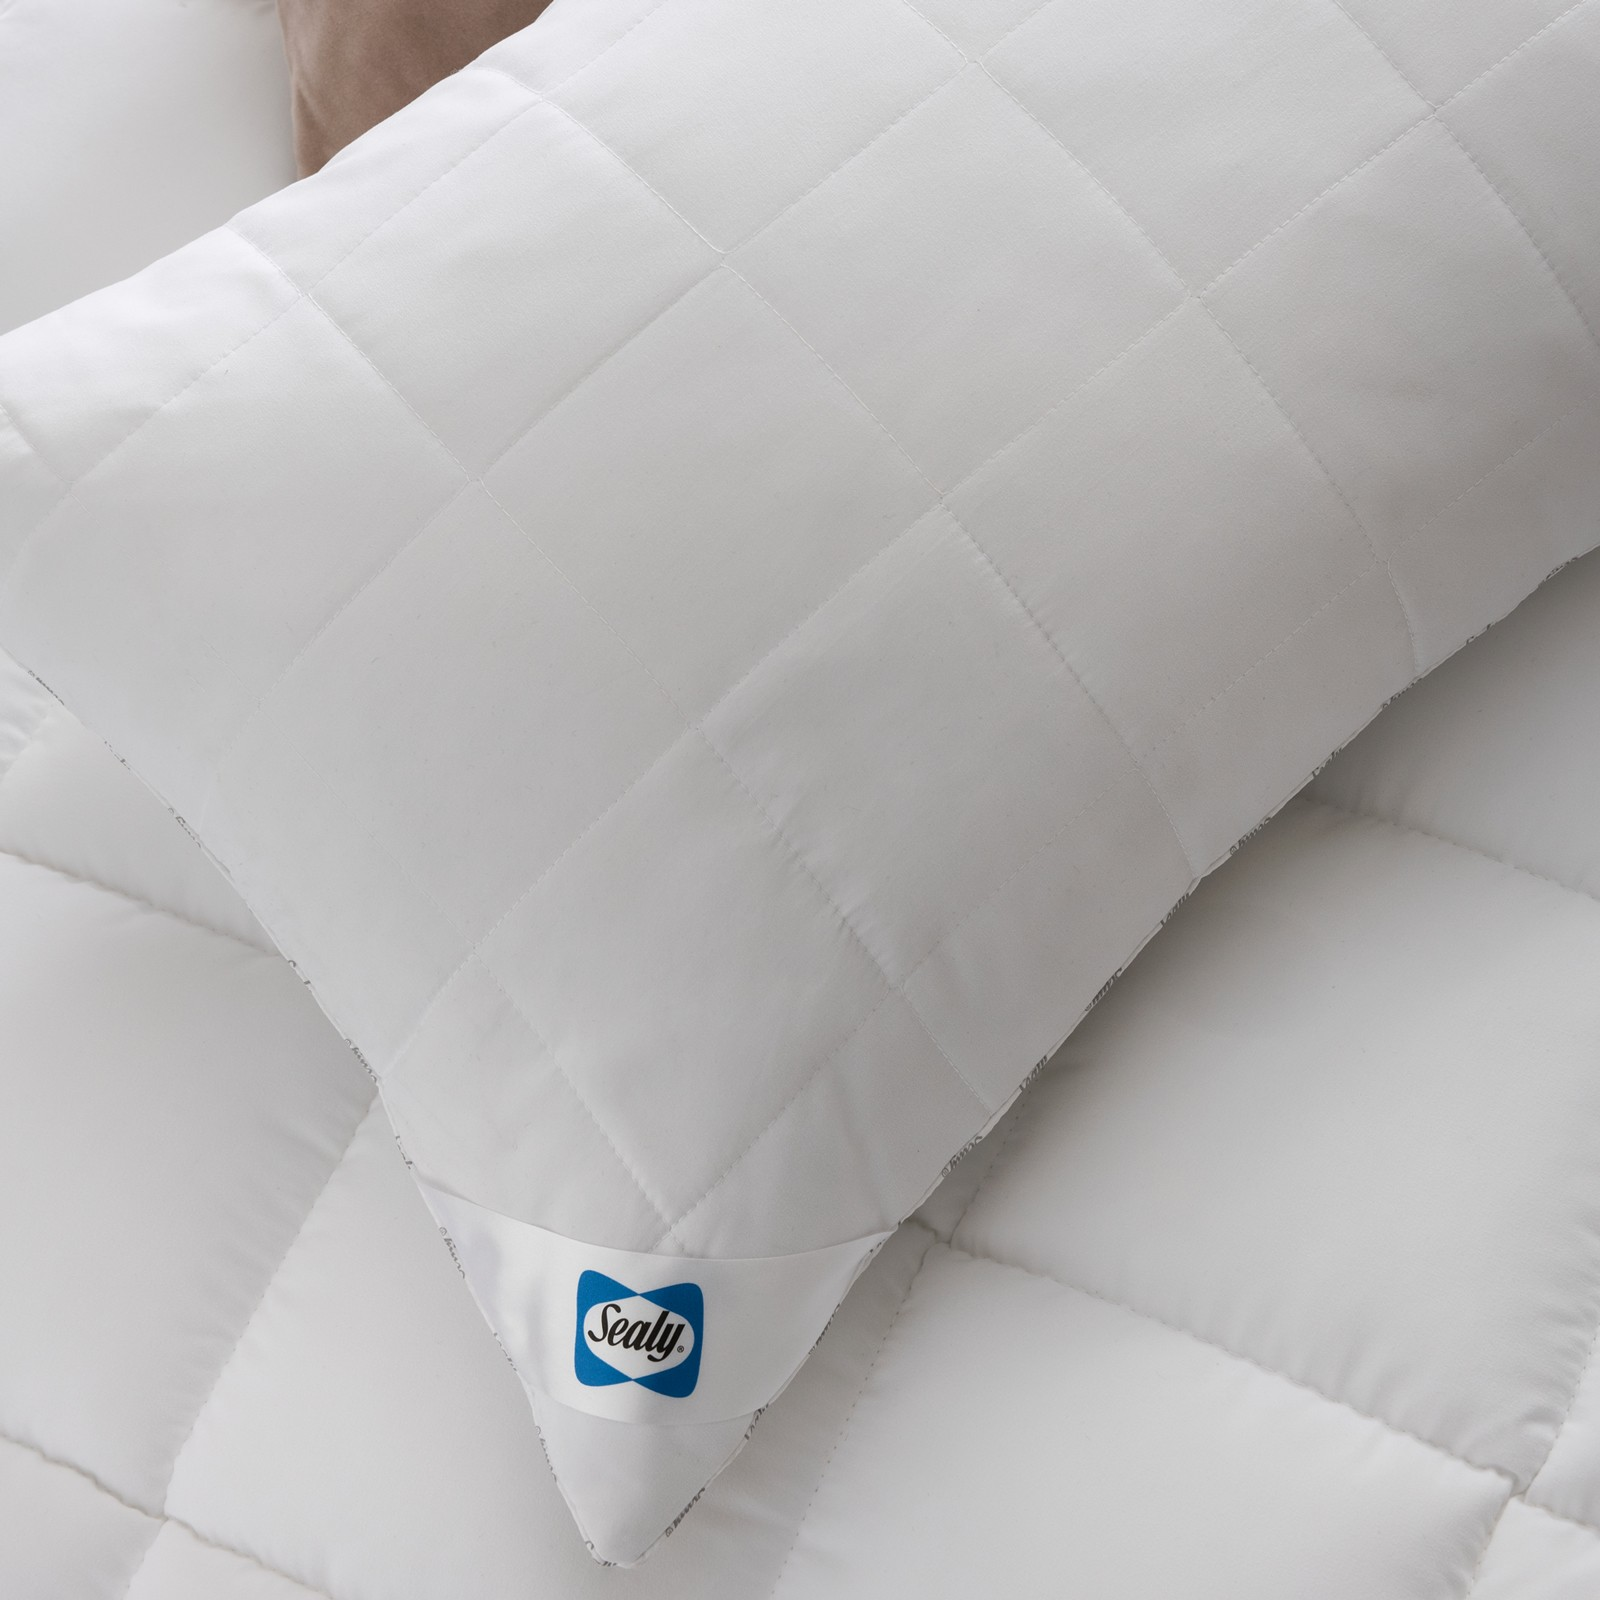 Sealy Response Clusterfill Pillow - best pillow